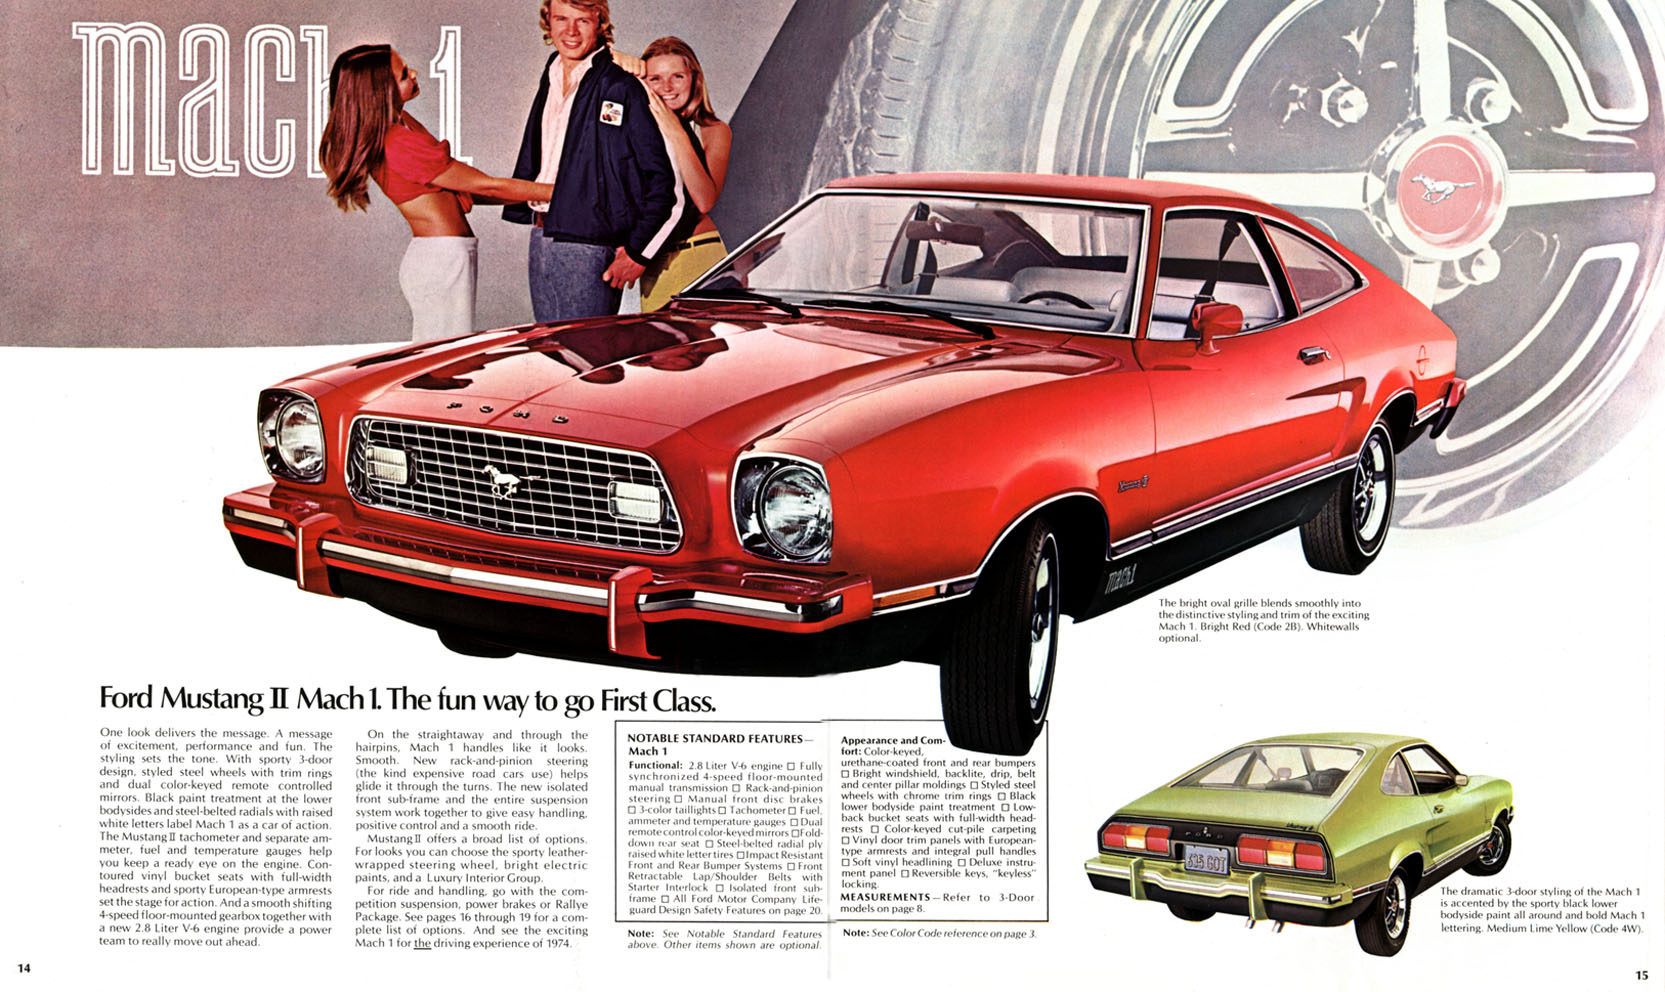 1974 Ford Mustang II Mach I advertisement